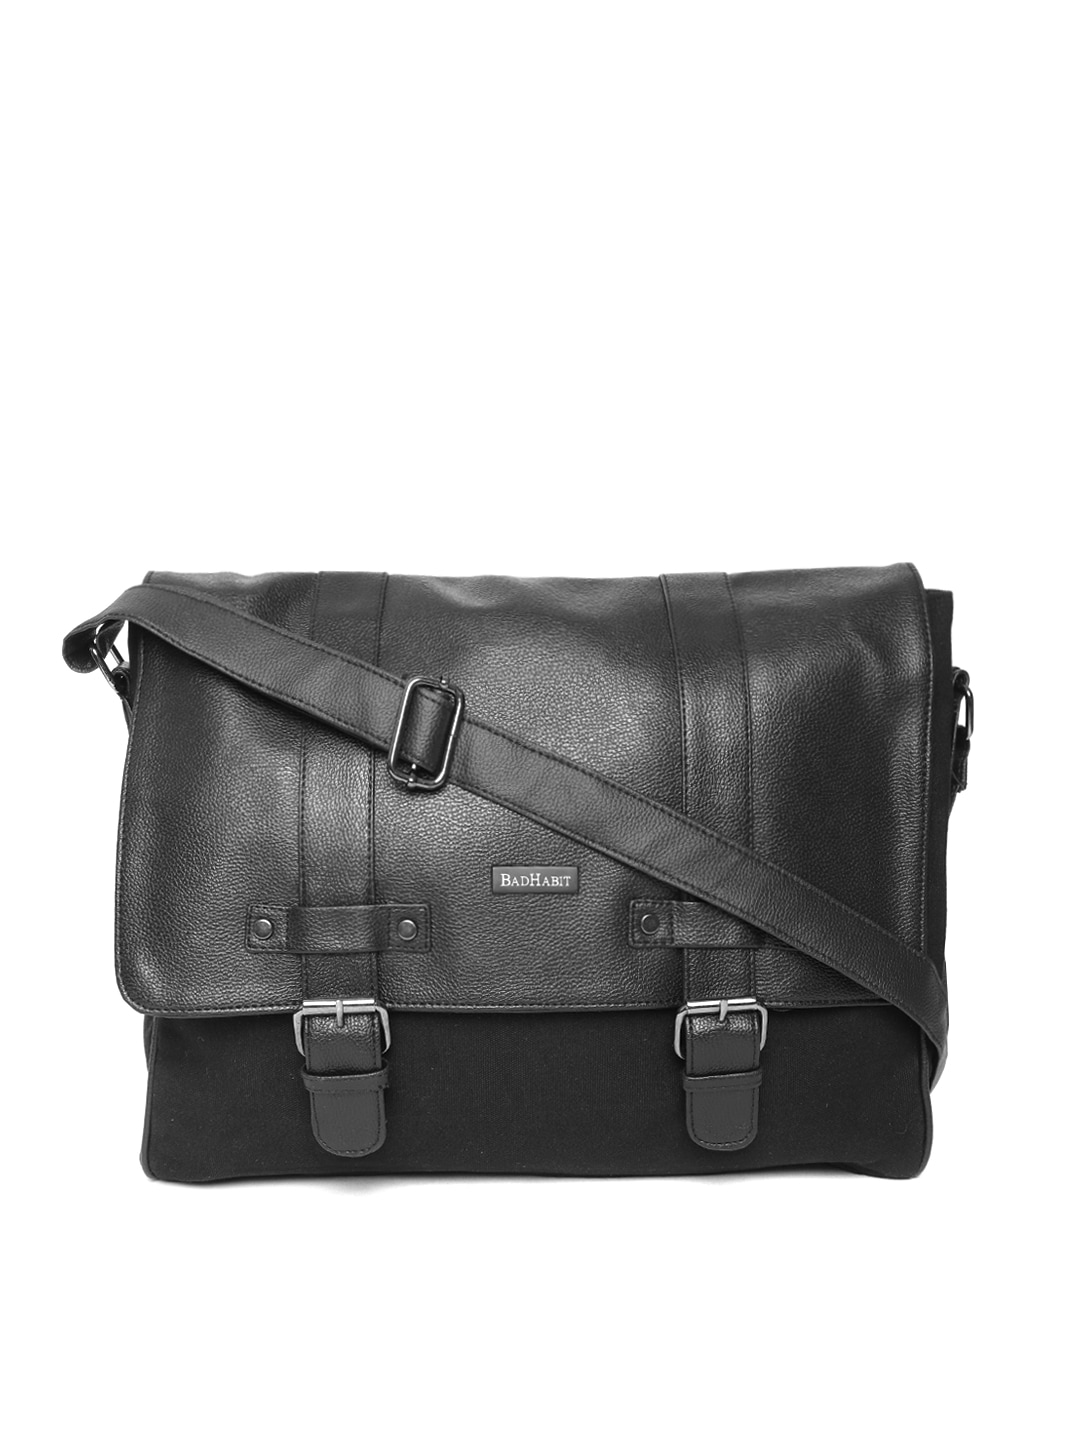 3a7214861c7e8c Office Bags - Buy Office Bags Online in India | Myntra